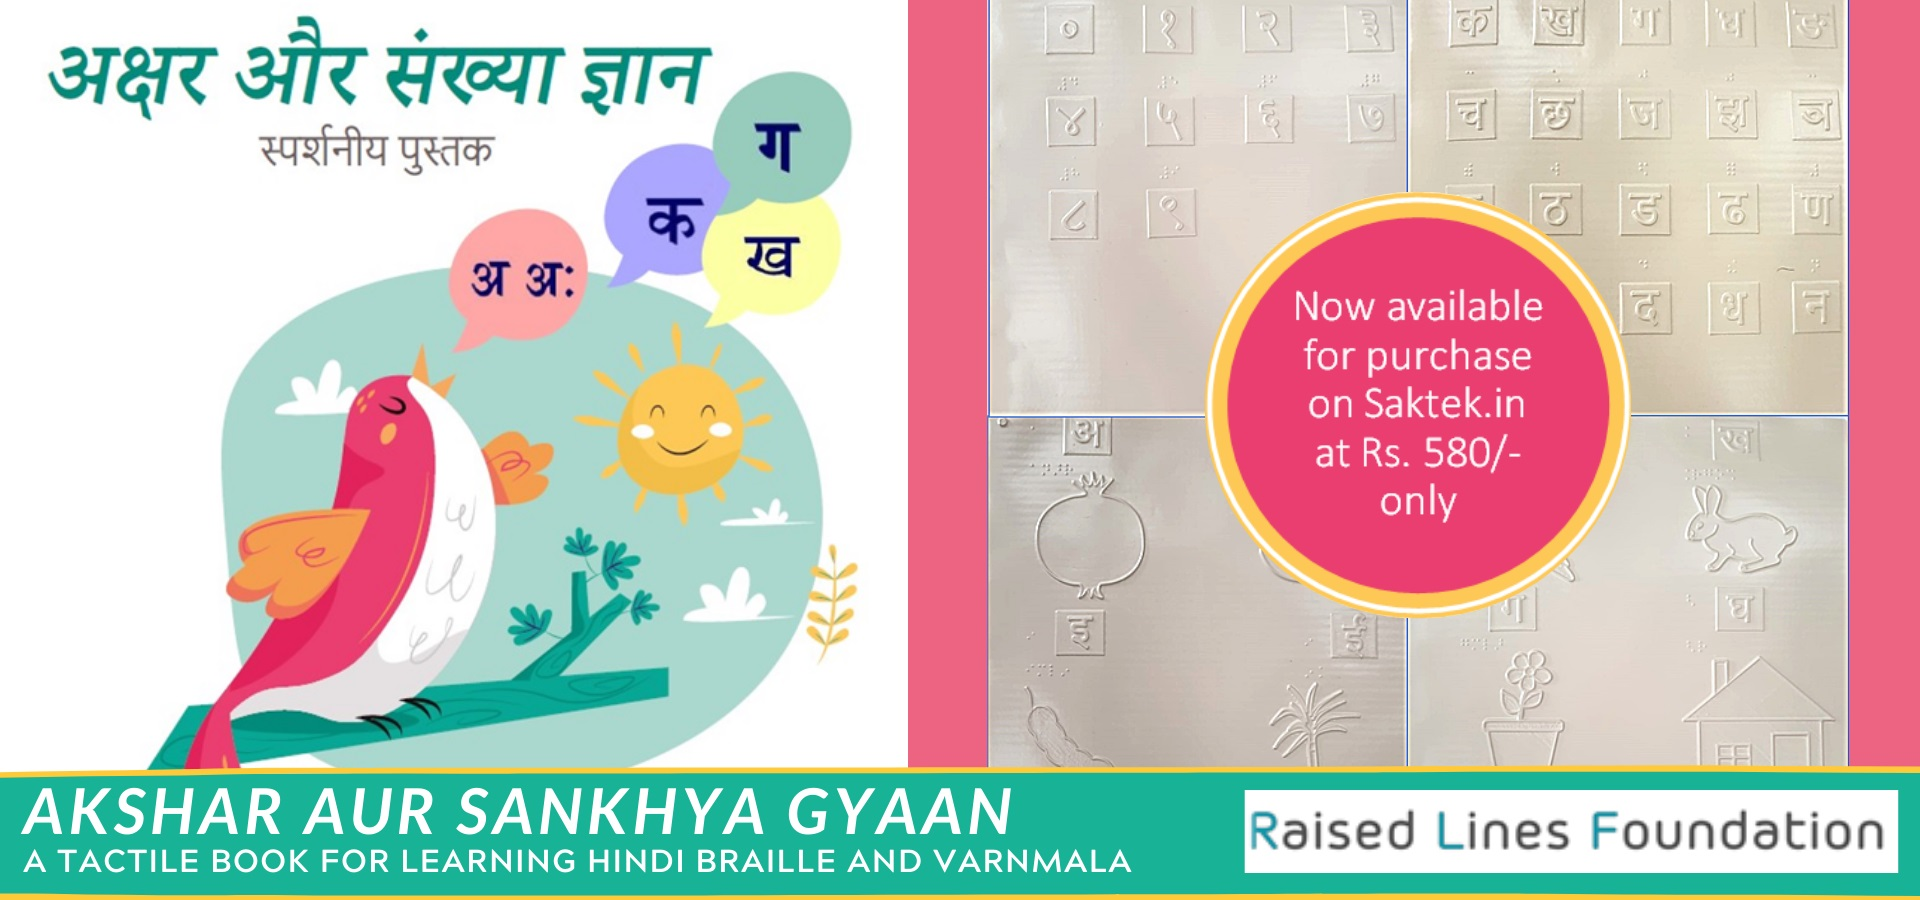 Akshar aur Sankhya Gyaan- A tactile book for learning Hindi Braille and Varnmala by Raised Line Foundation. Now available on saktek.in at Rs.580 only